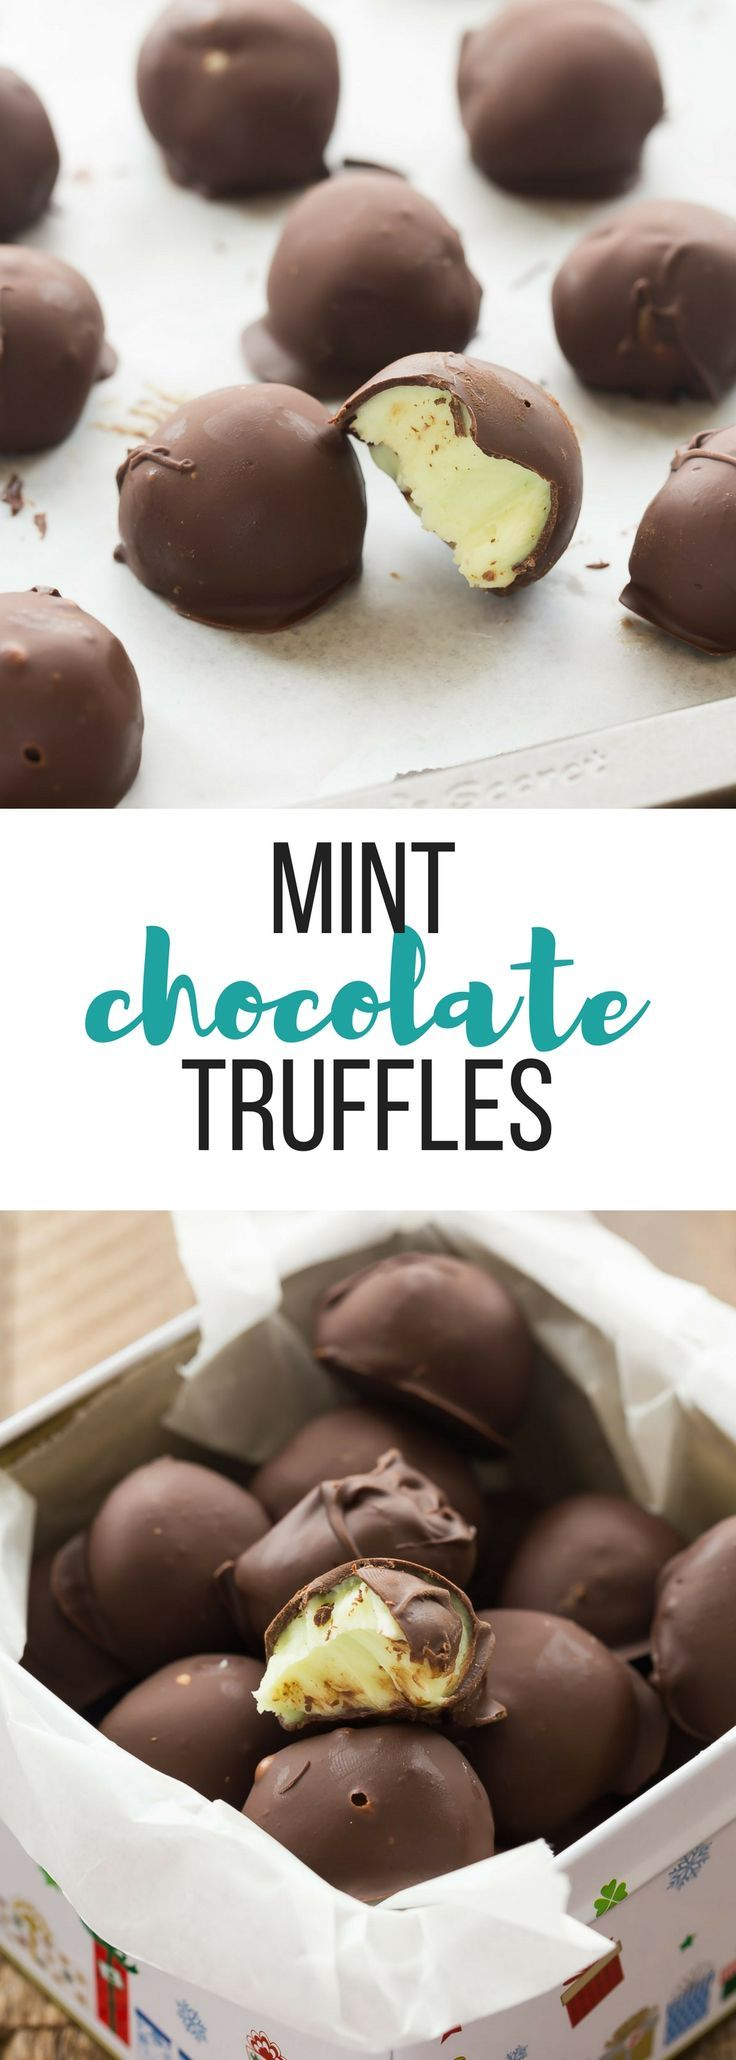 Easy favorite recipes 17322 pinterest these easy mint chocolate truffles are an easy no bake christmas dessert perfect for gift giving negle Gallery